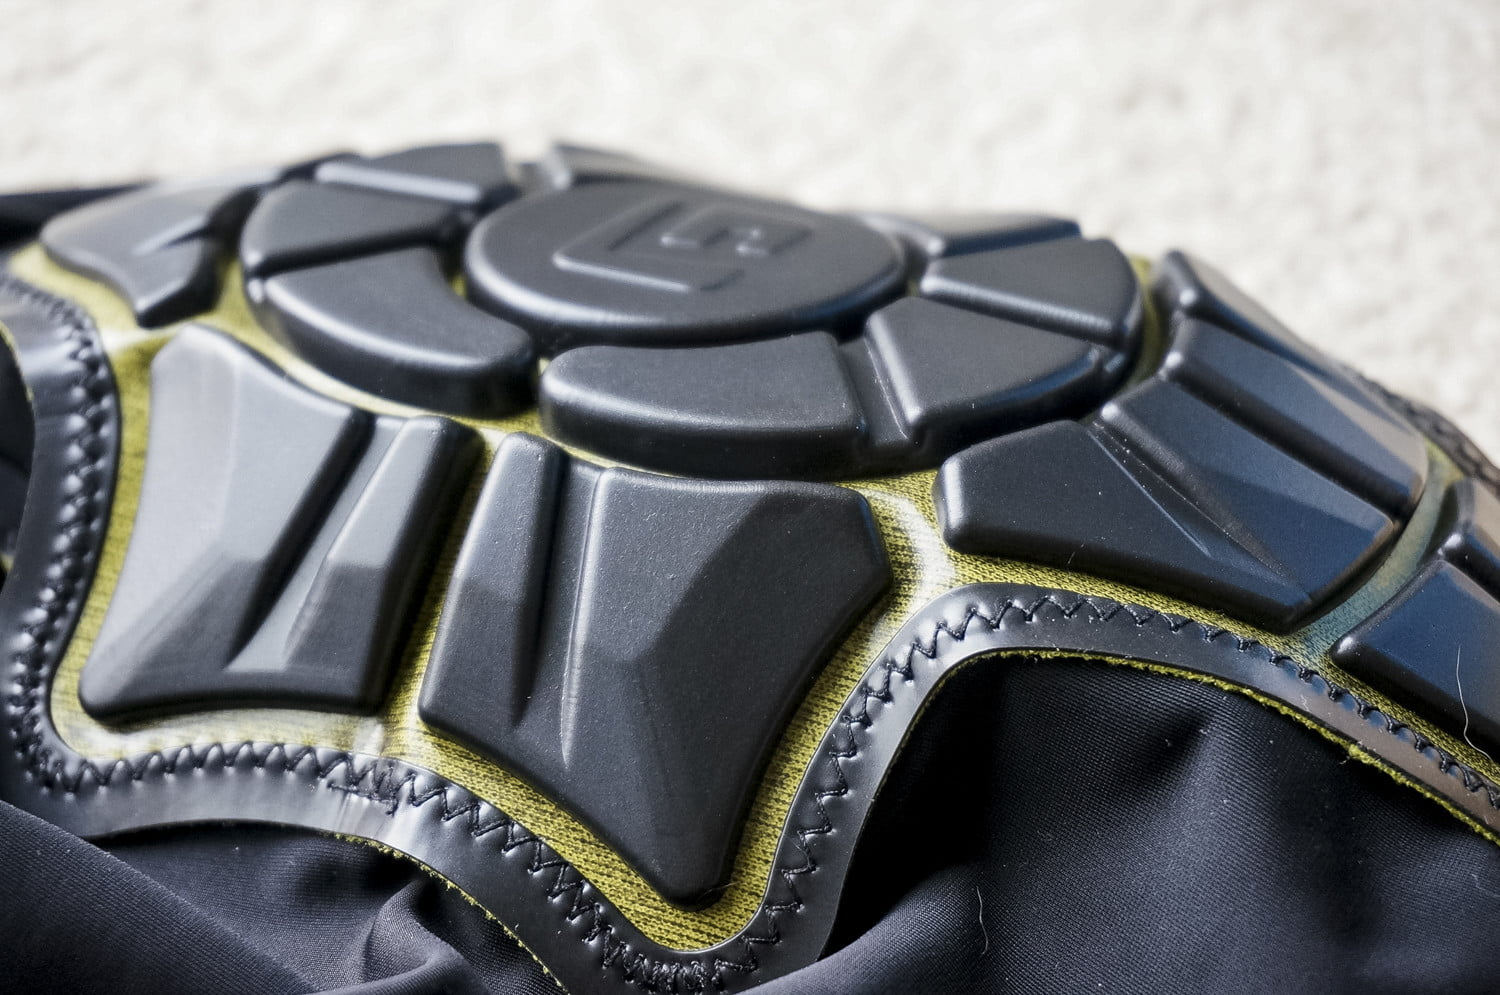 G-Form Armor: Our first take